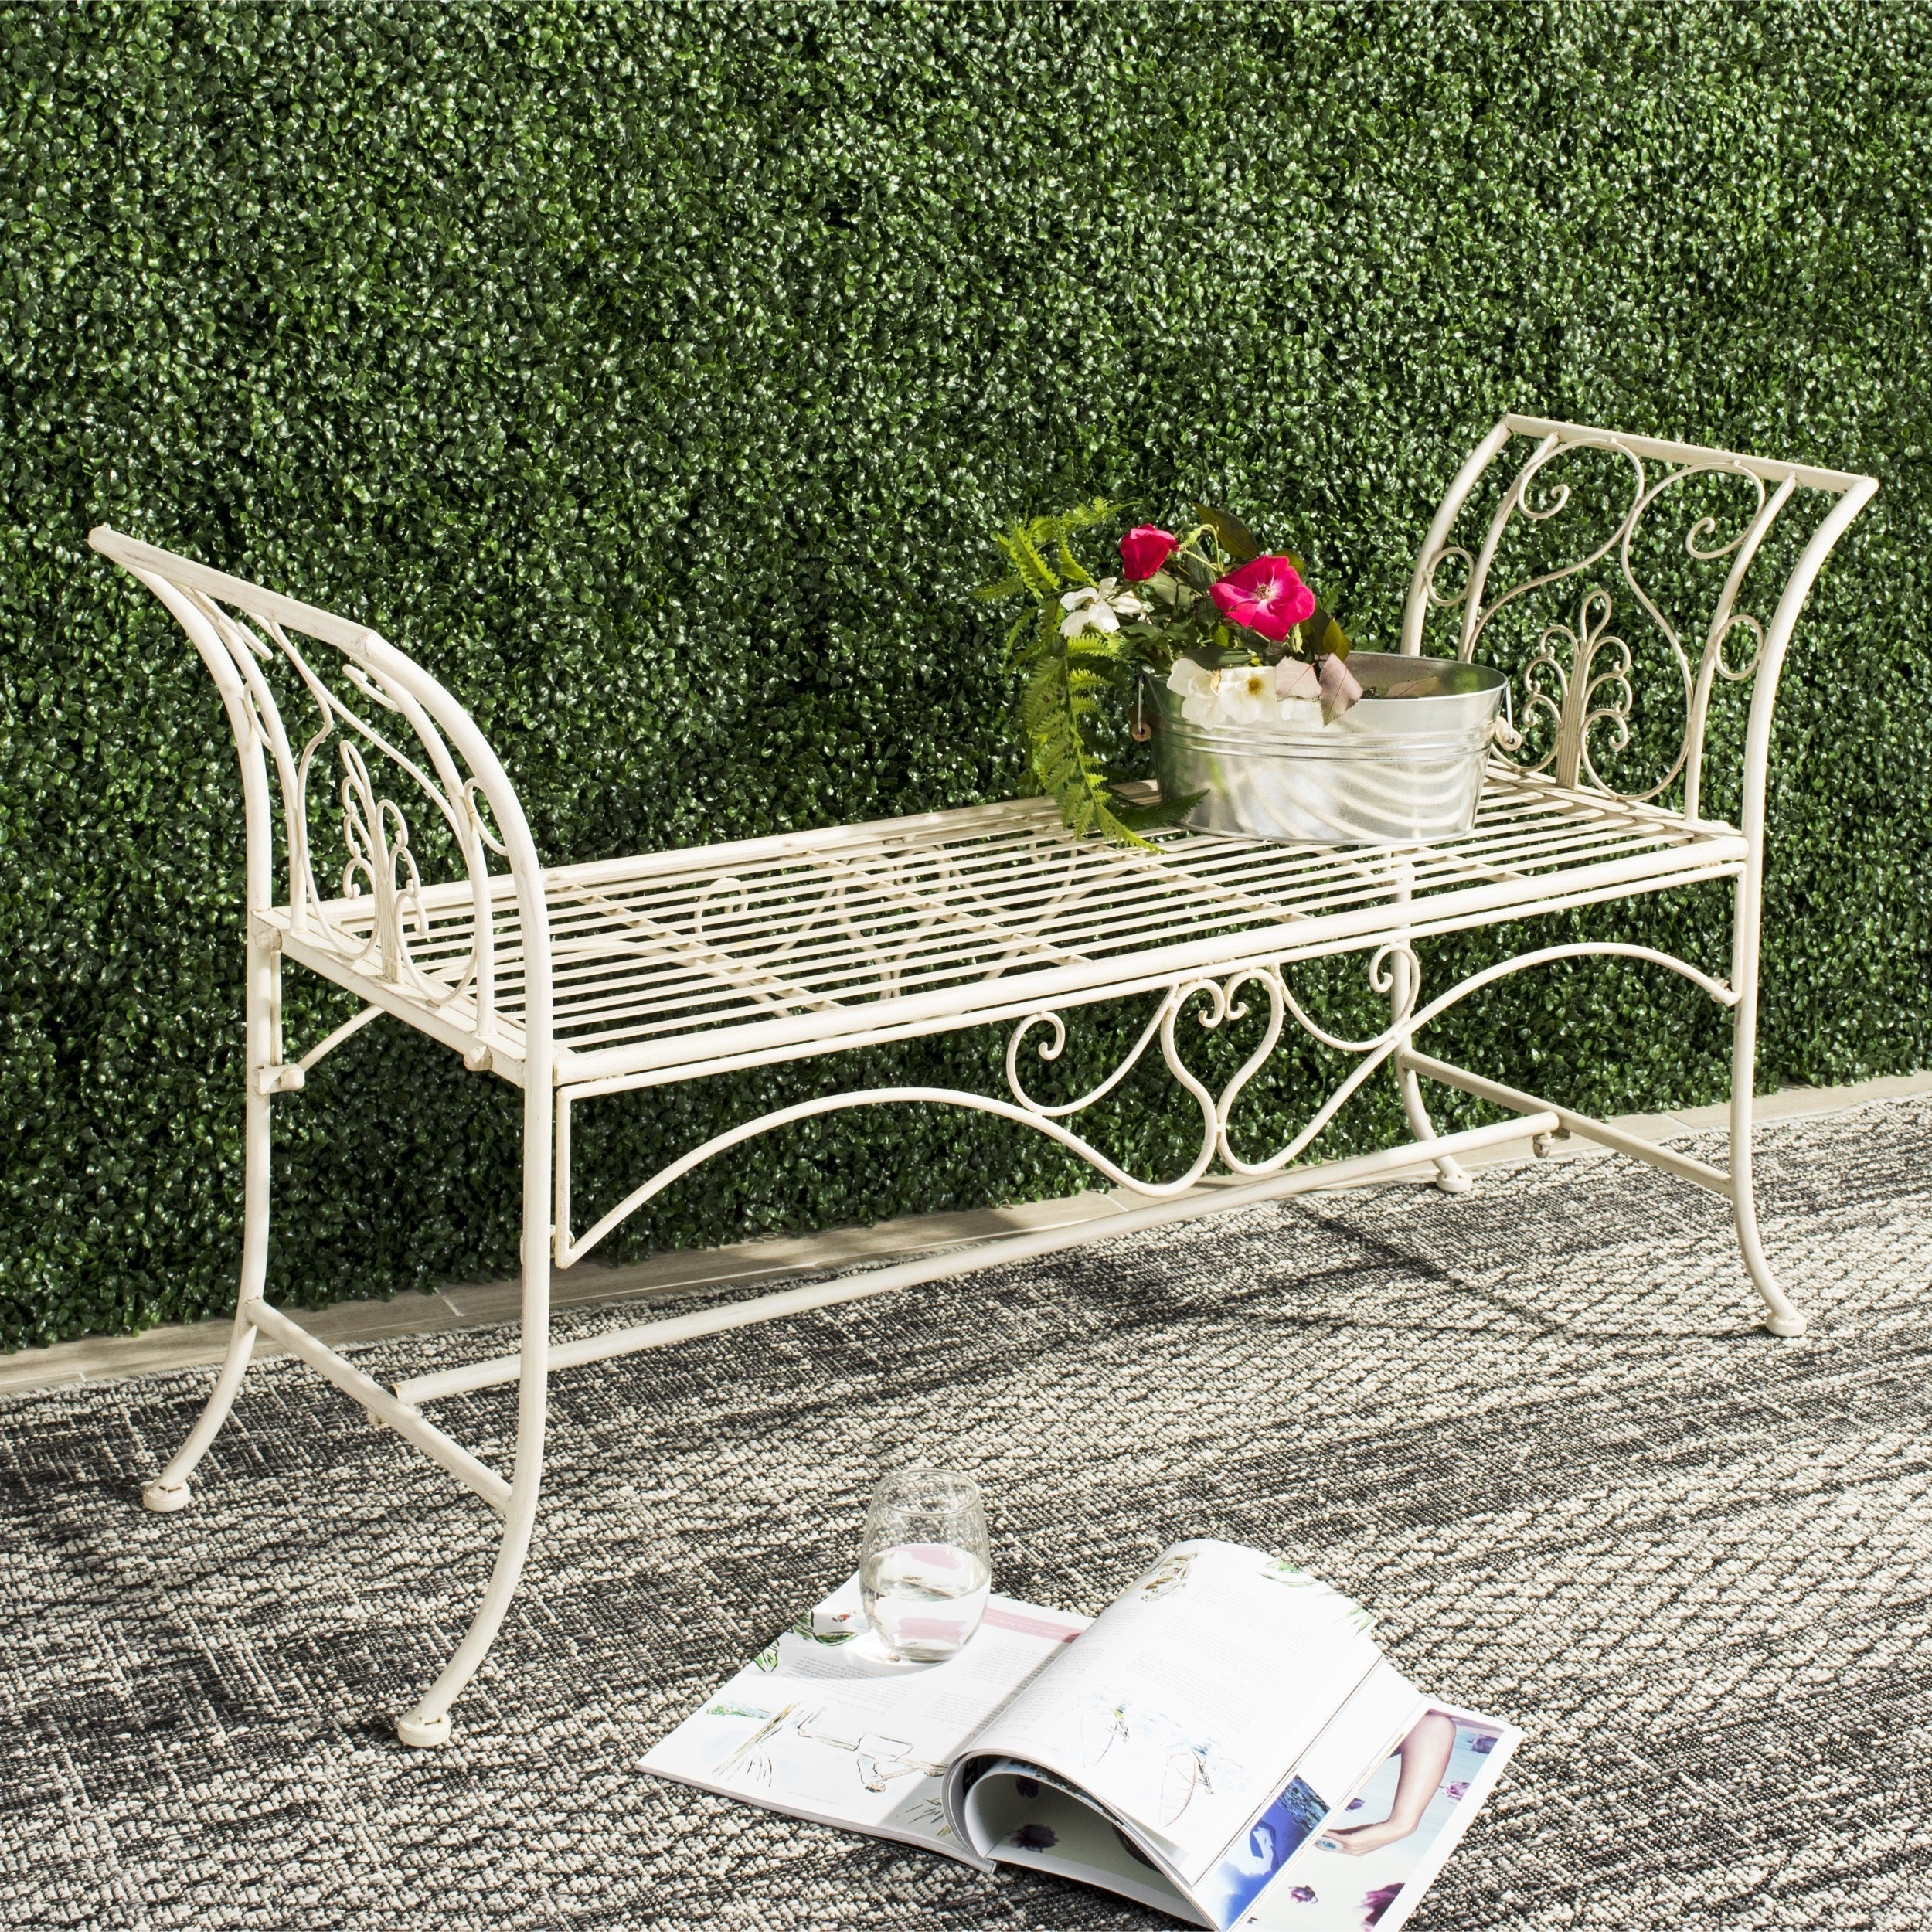 circa lotfinder white details garden iron lot and nyr bench wood cast a painted